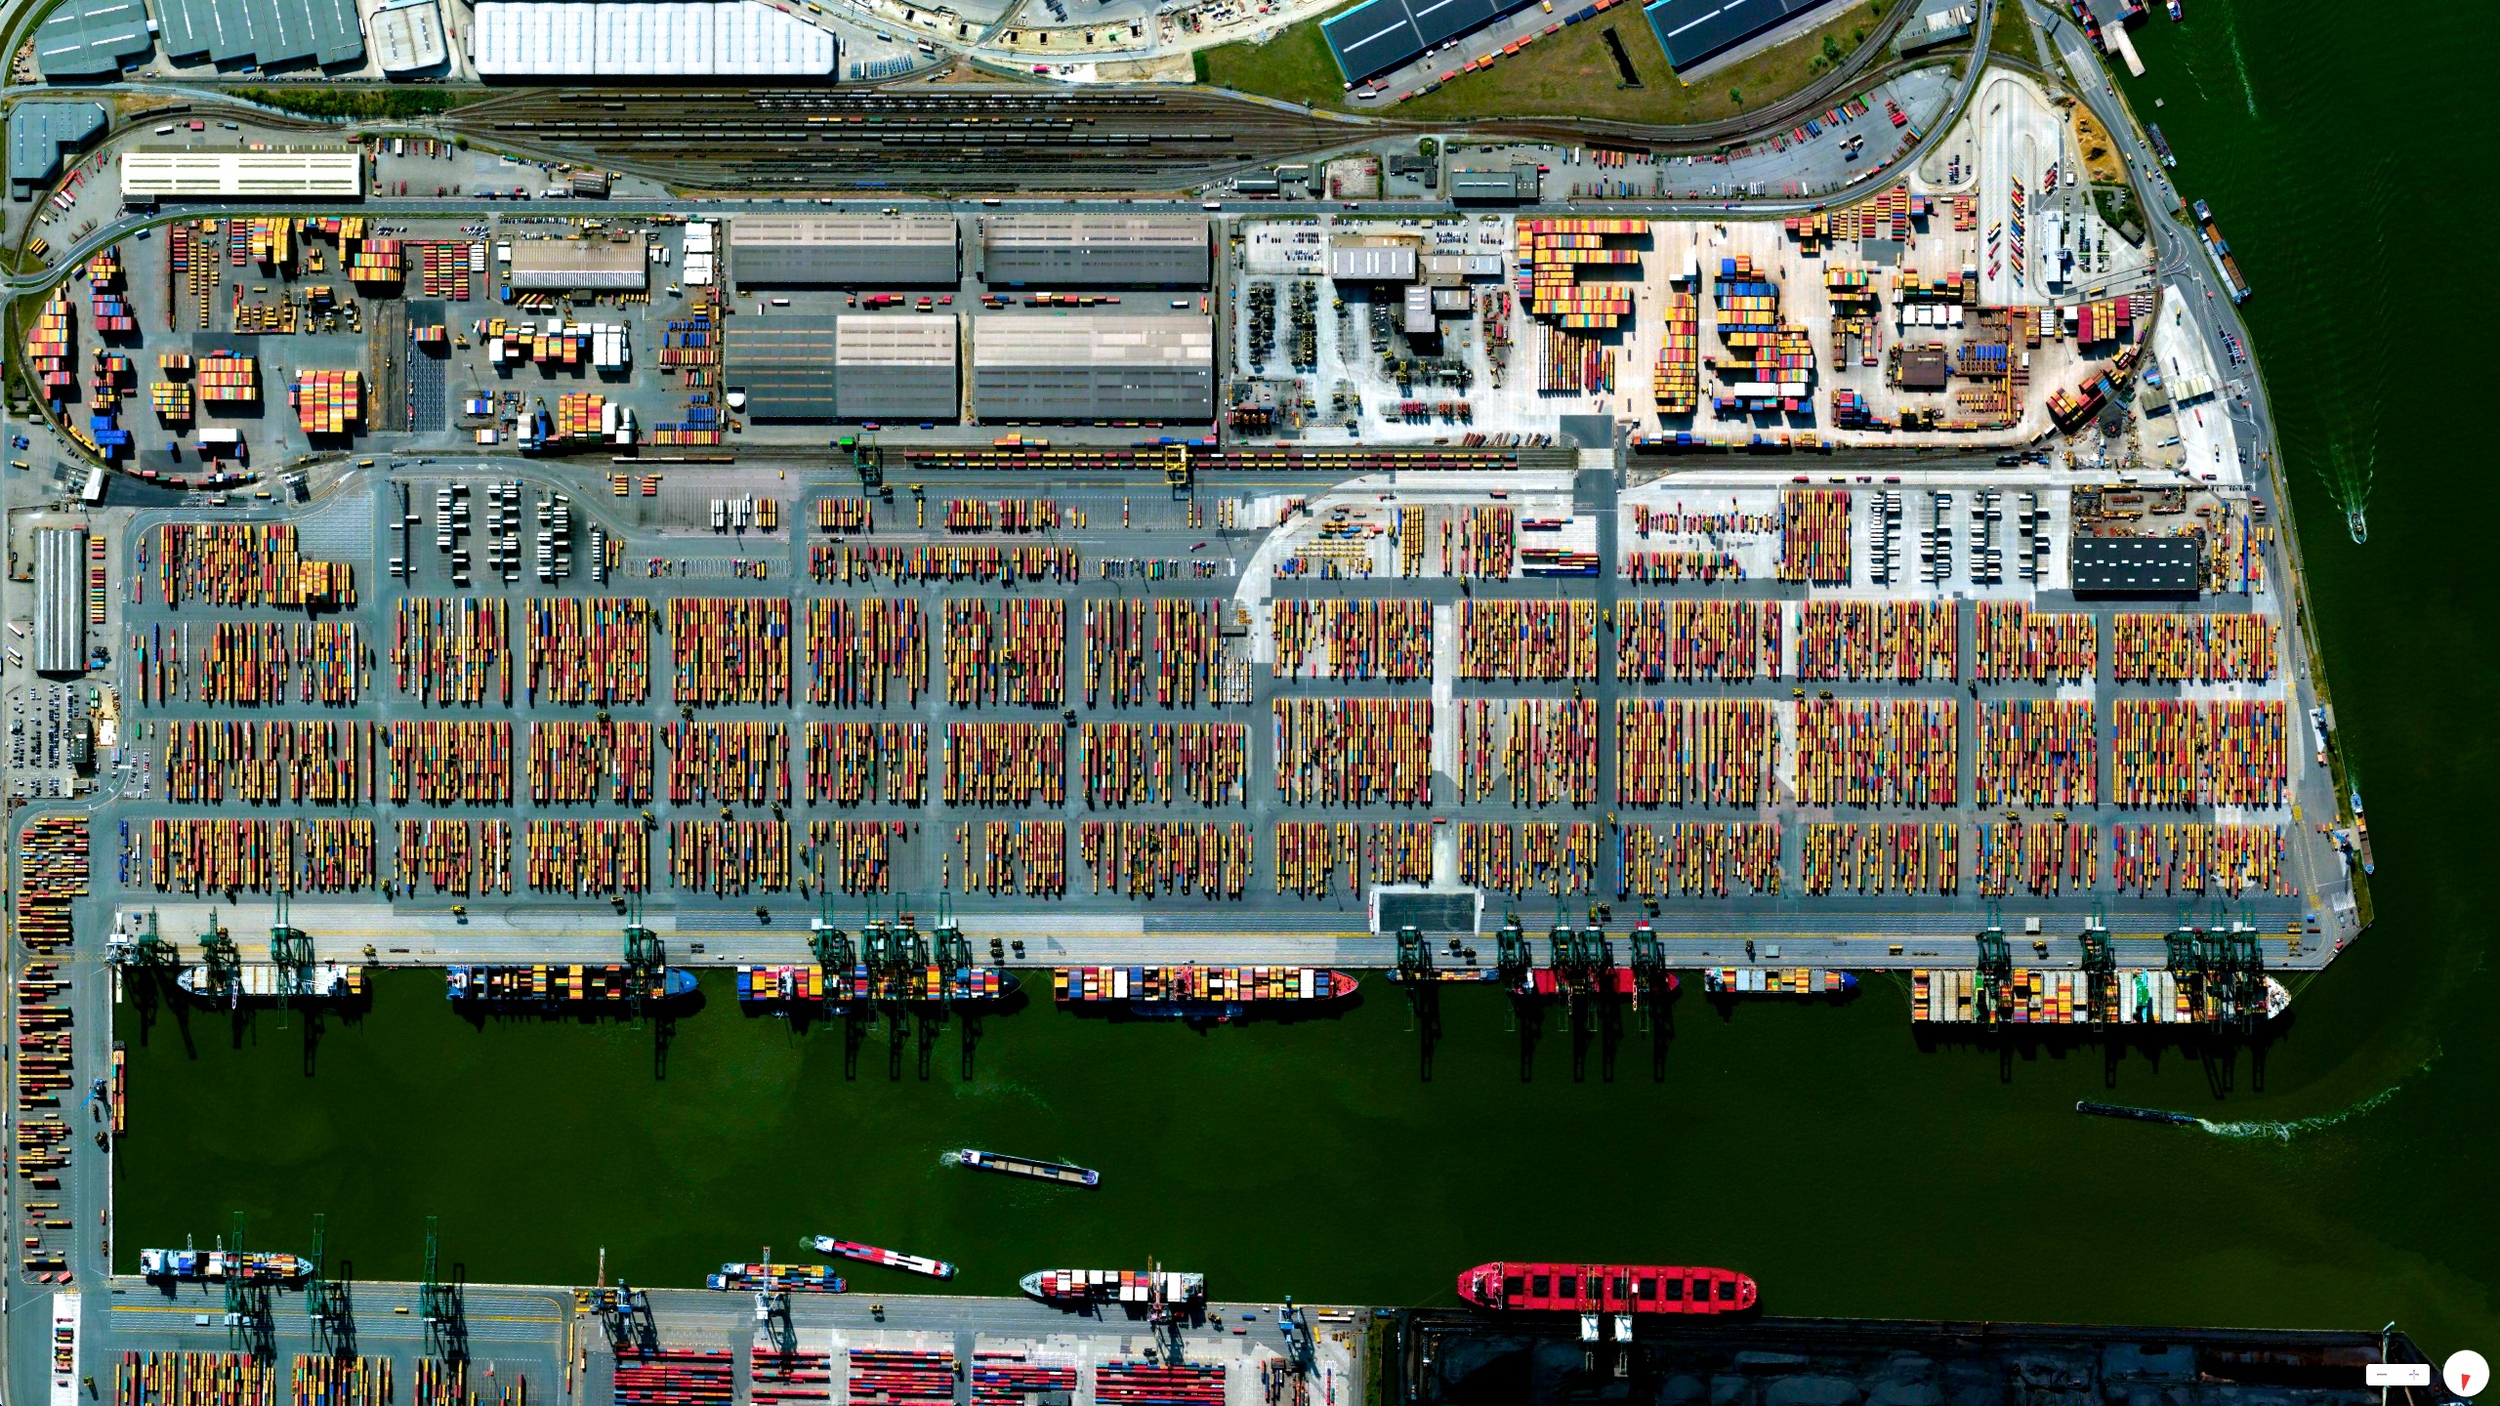 1/28/2014    Port of Antwerp   Antwerp, Belgium   51°16′12″N 4°20′12″E